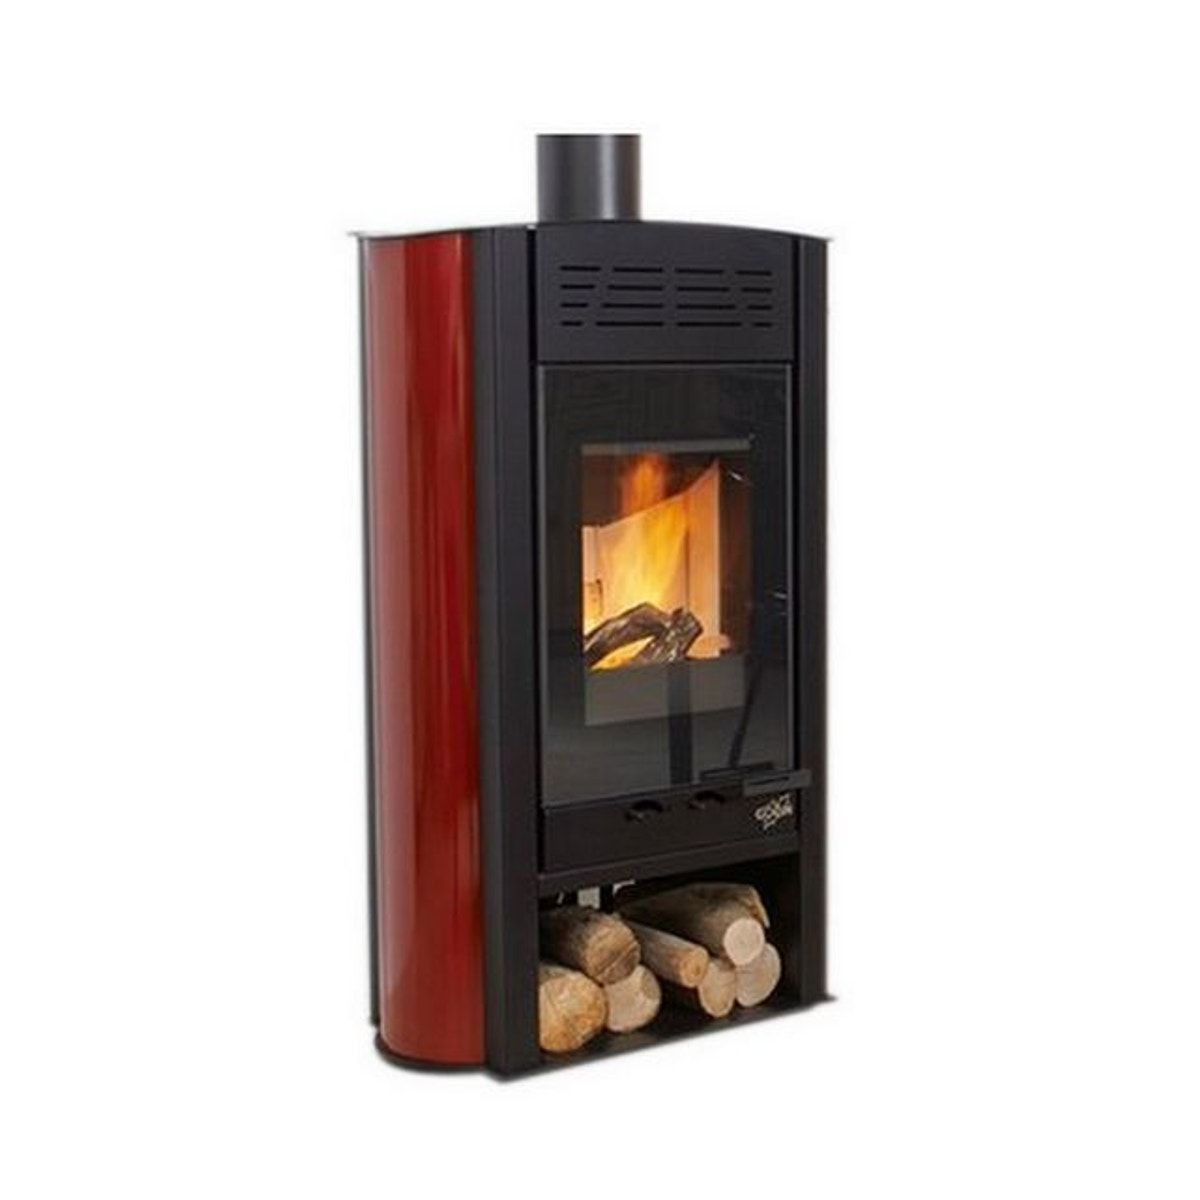 Poele A Bois Bbc Styldesign 5 Kw Cotes Emaille Carmin 400192carmin Nel 2019 Products Poele A Bois Bois E Poele